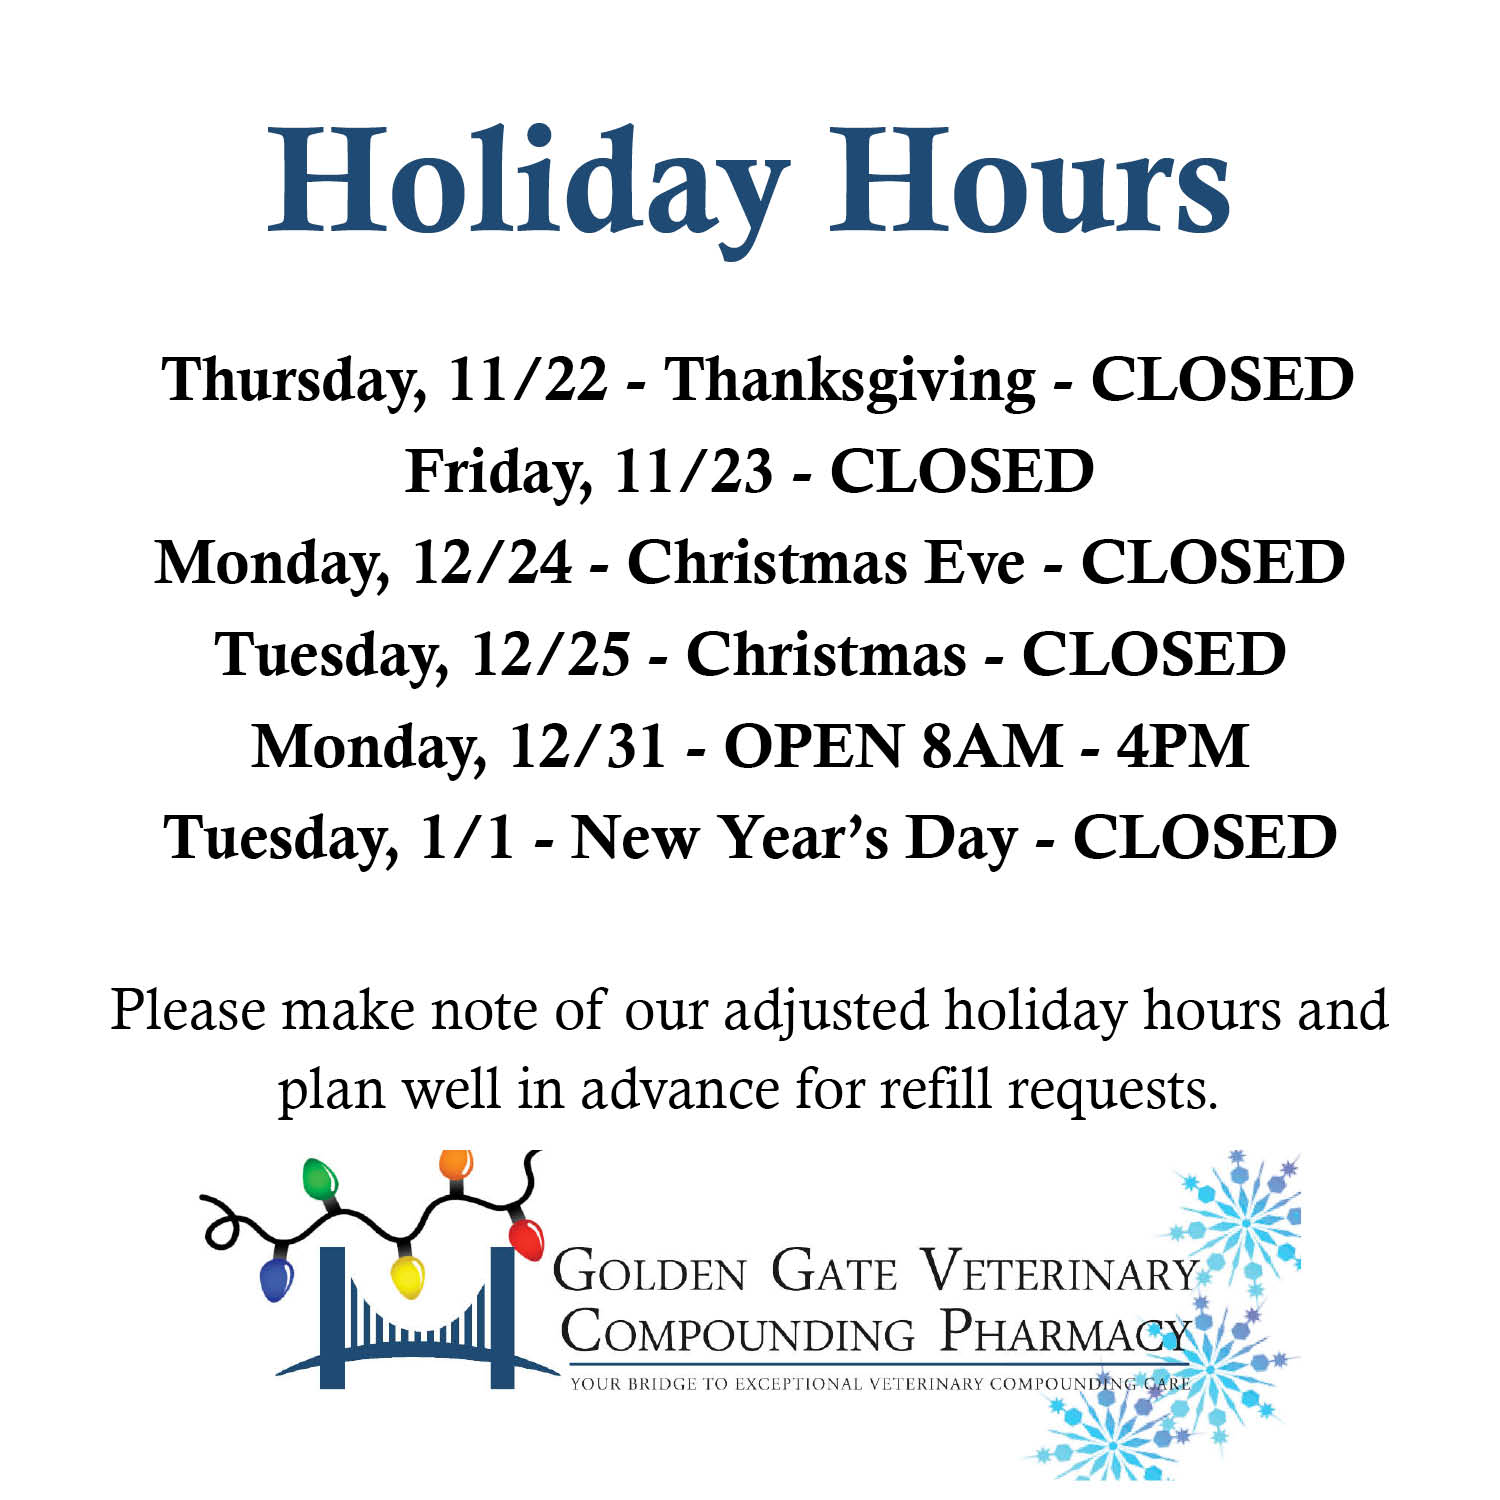 Holiday Hours - Golden Gate Veterinary Compounding Pharmacy